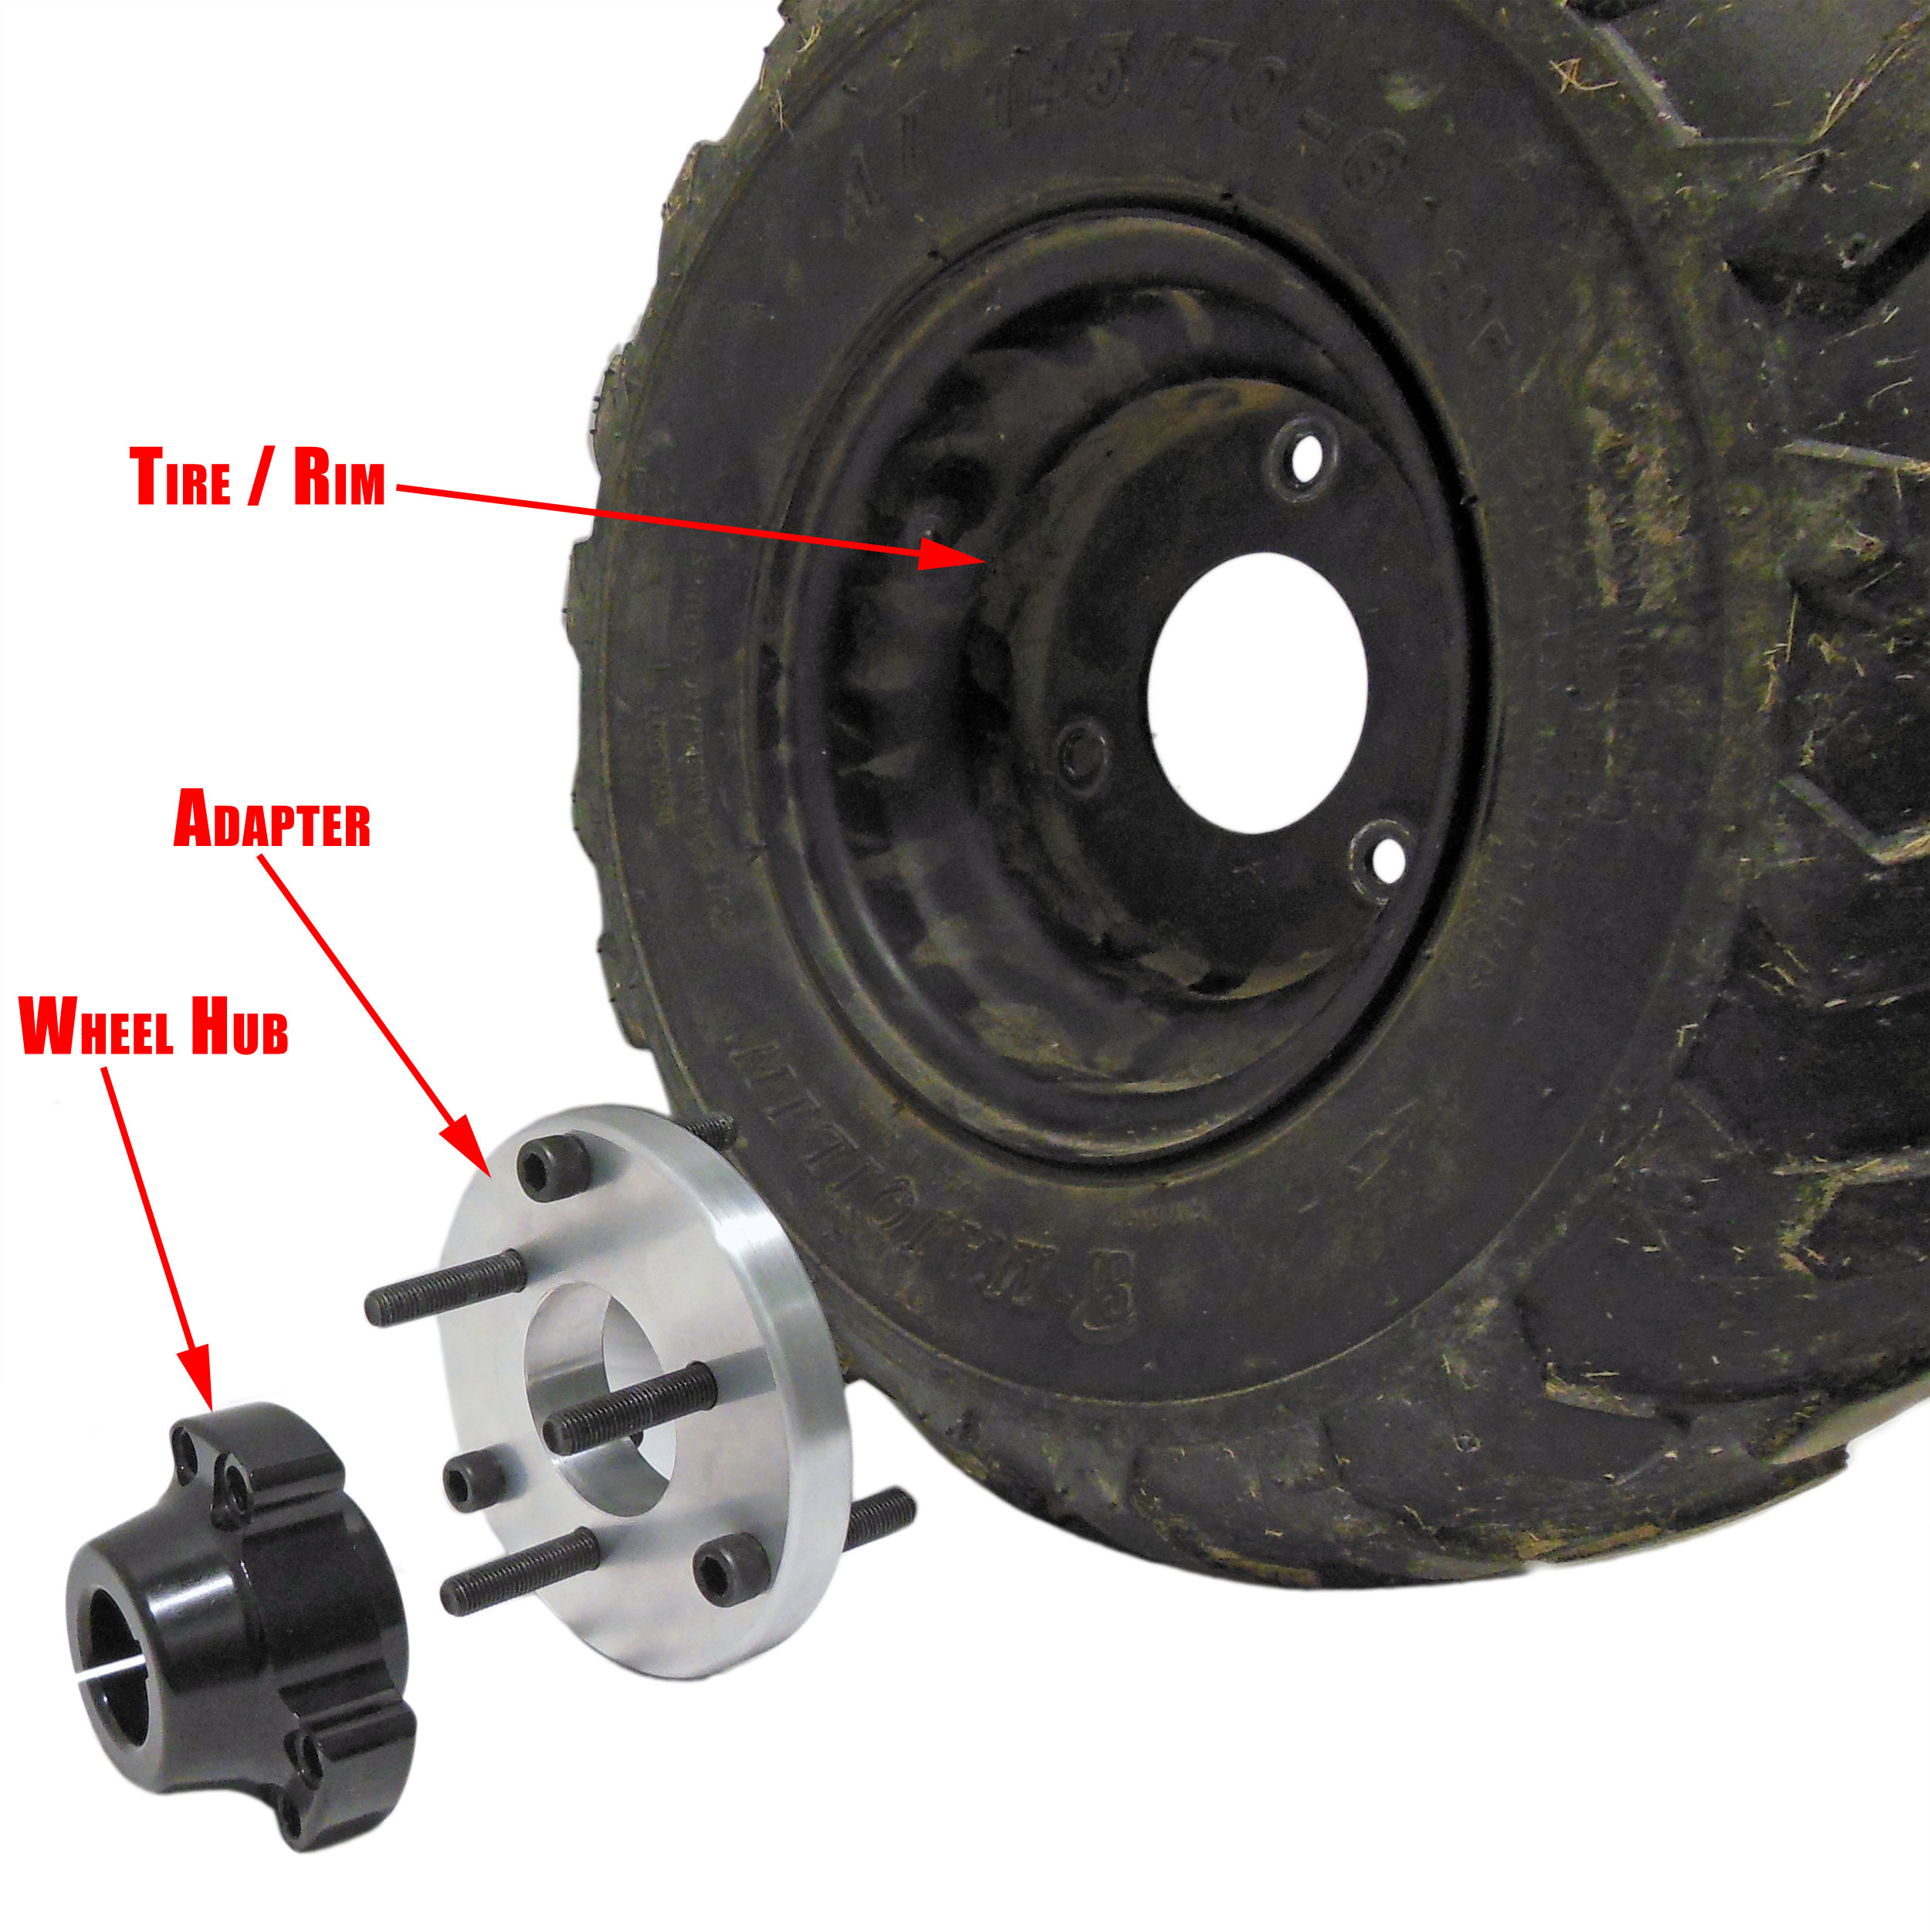 Conversion Wheel Hub Adapter for 3 Bolt Chinese Rims Allows wheels to be  used on 5/8